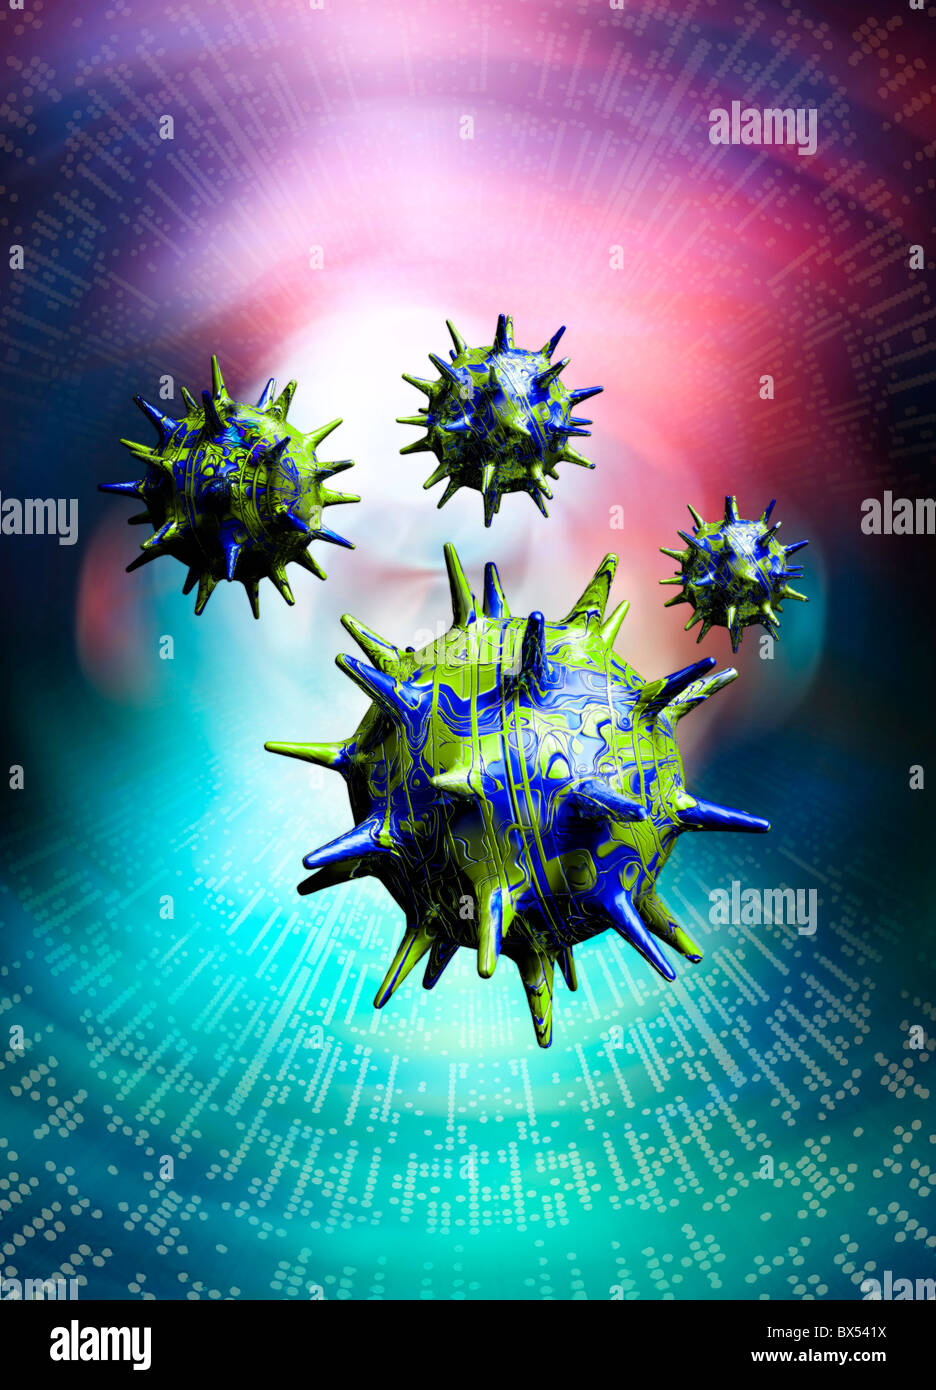 Virus informatique, conceptual artwork Photo Stock